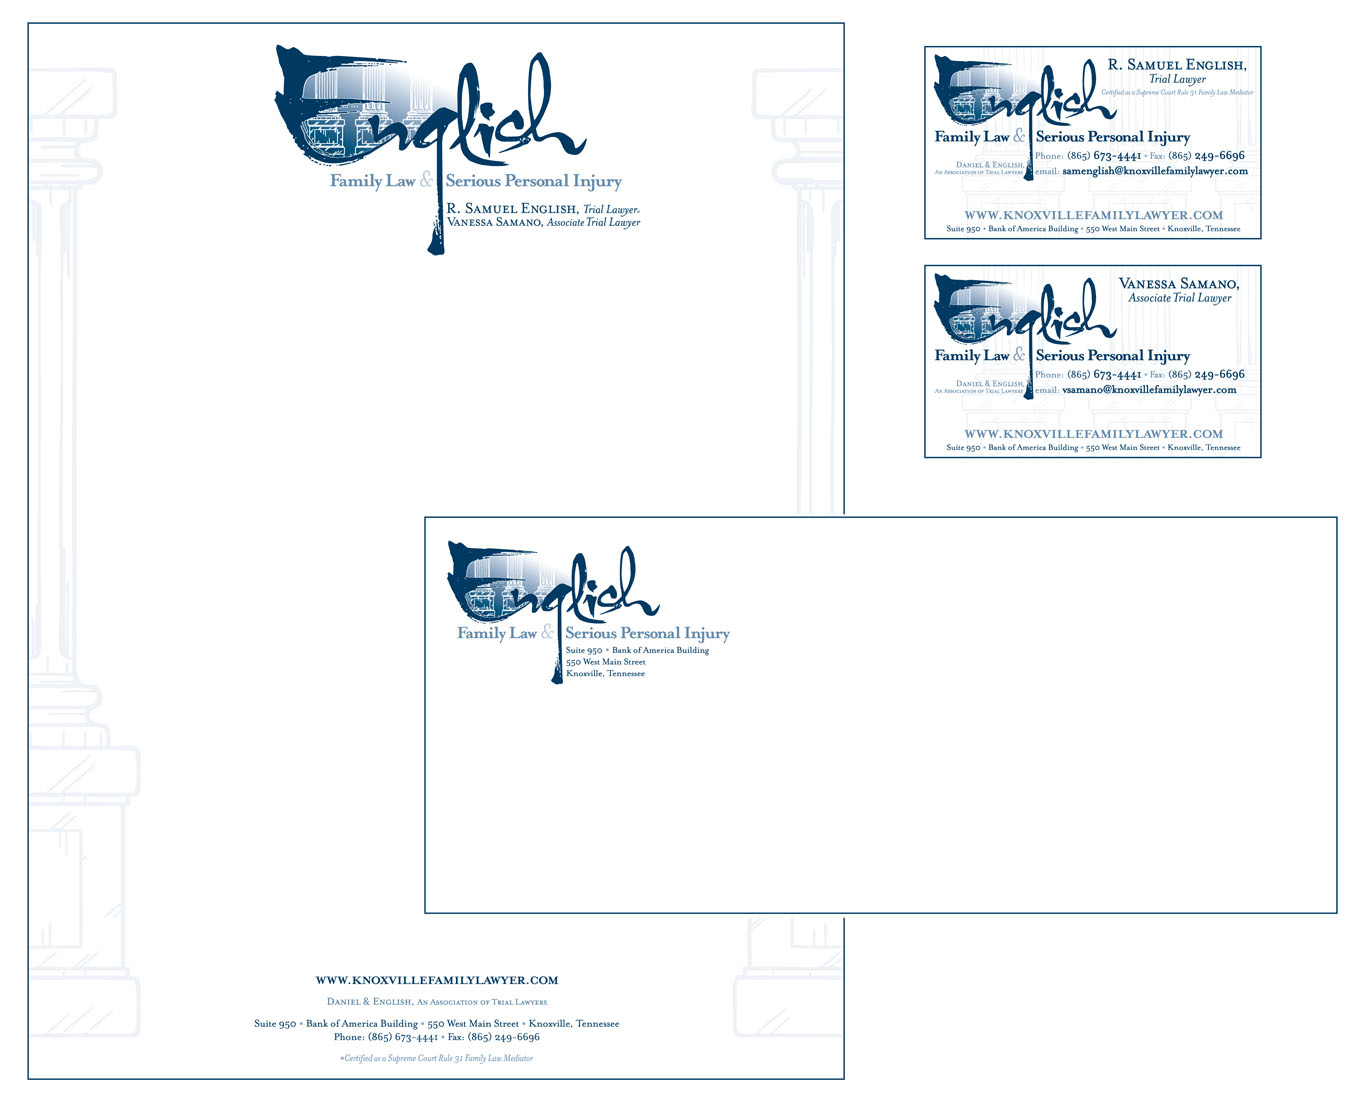 the english law firm letterhead package knoxville lawyer business card